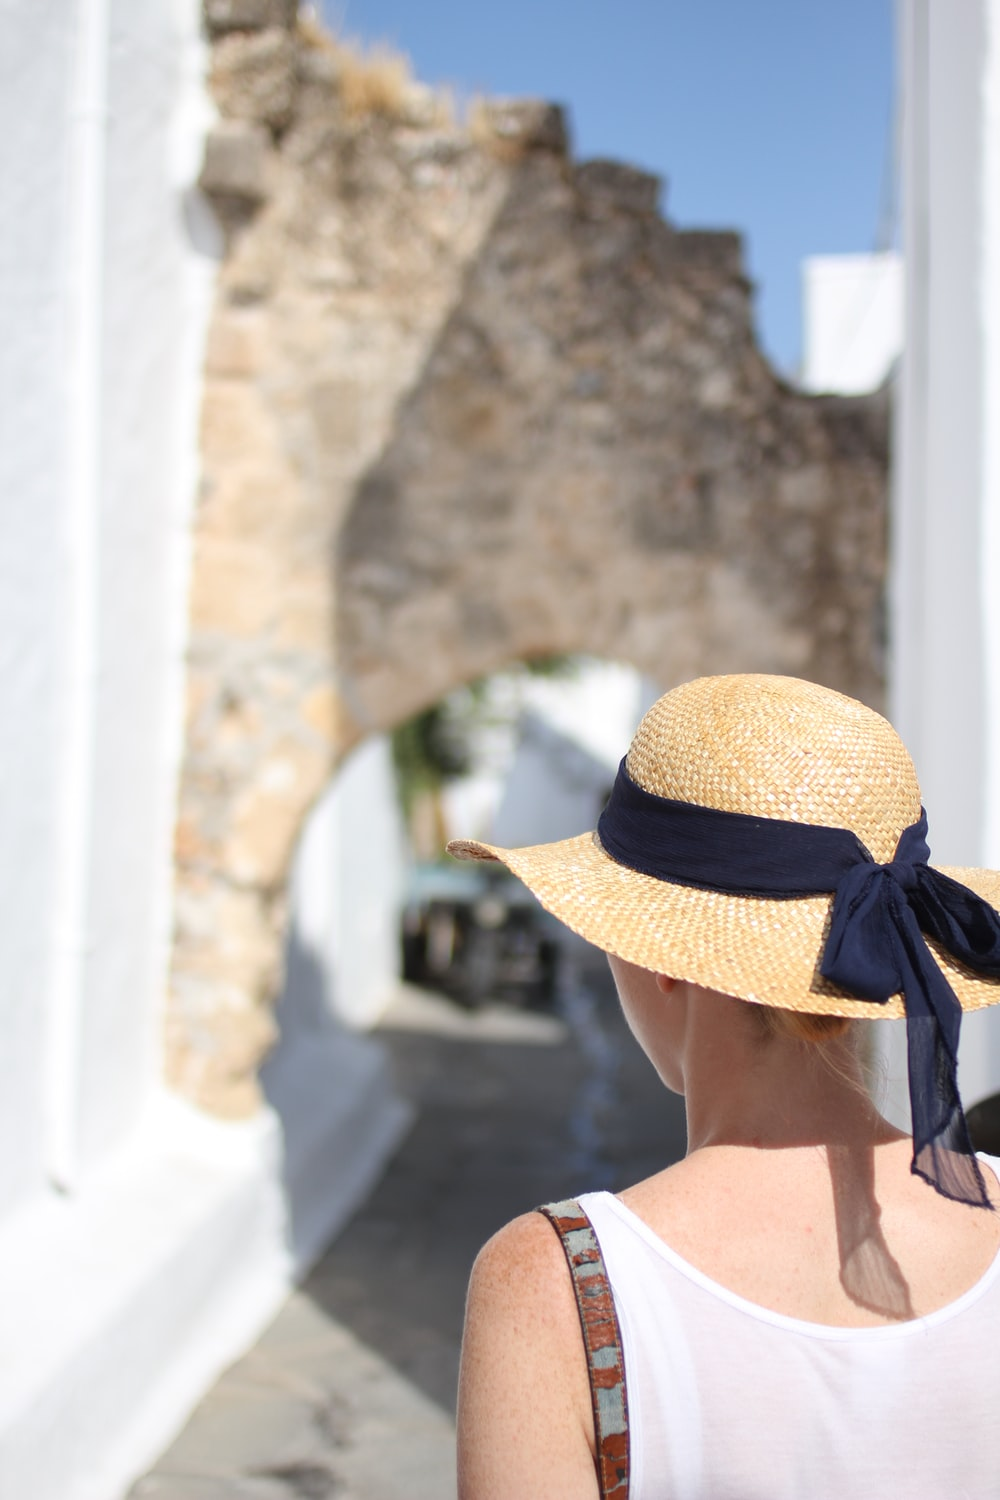 woman in blue and white striped sun hat